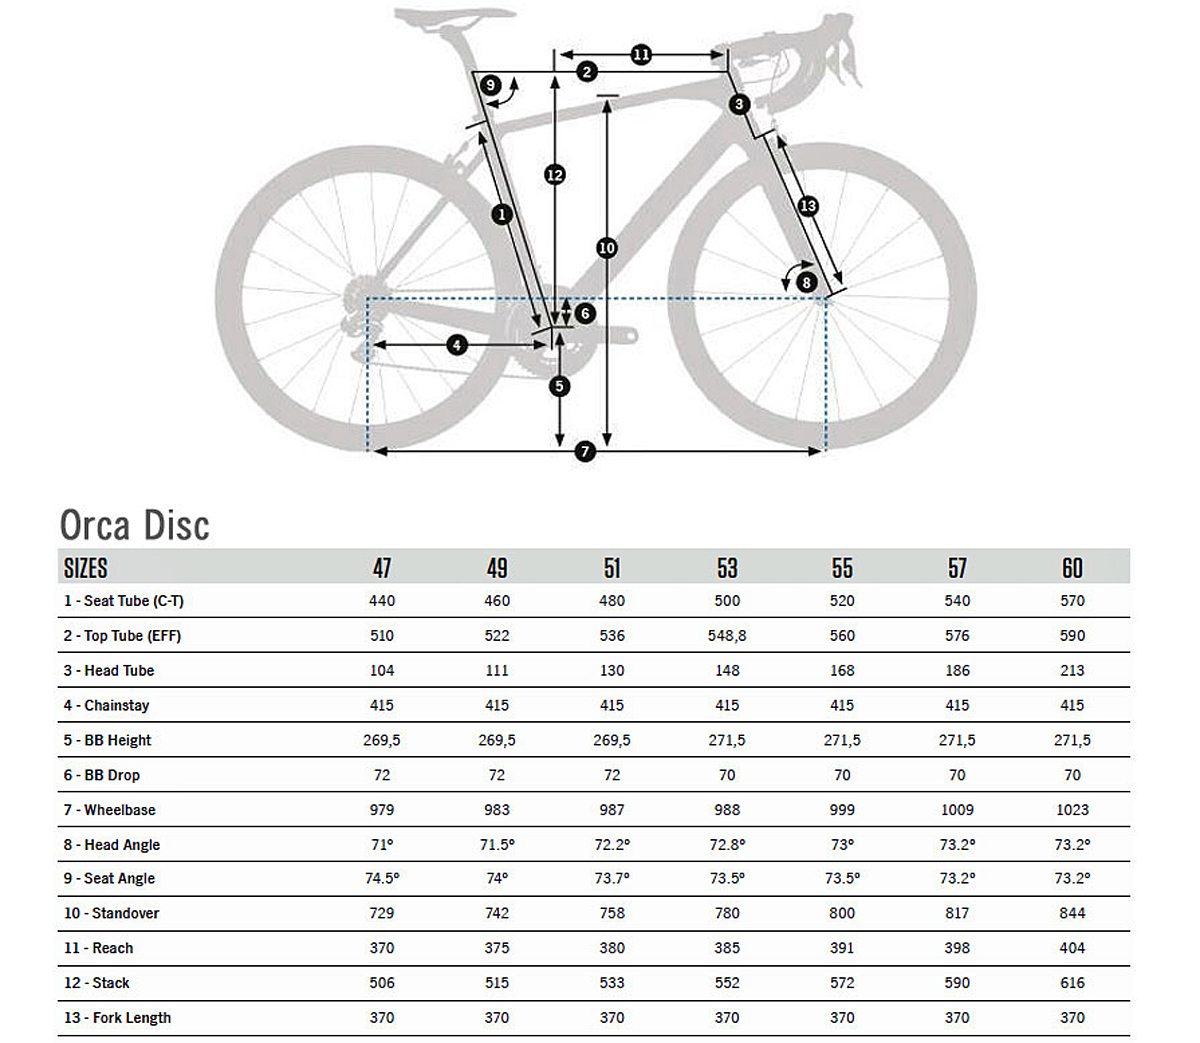 Orbea Orca Disc Geometry